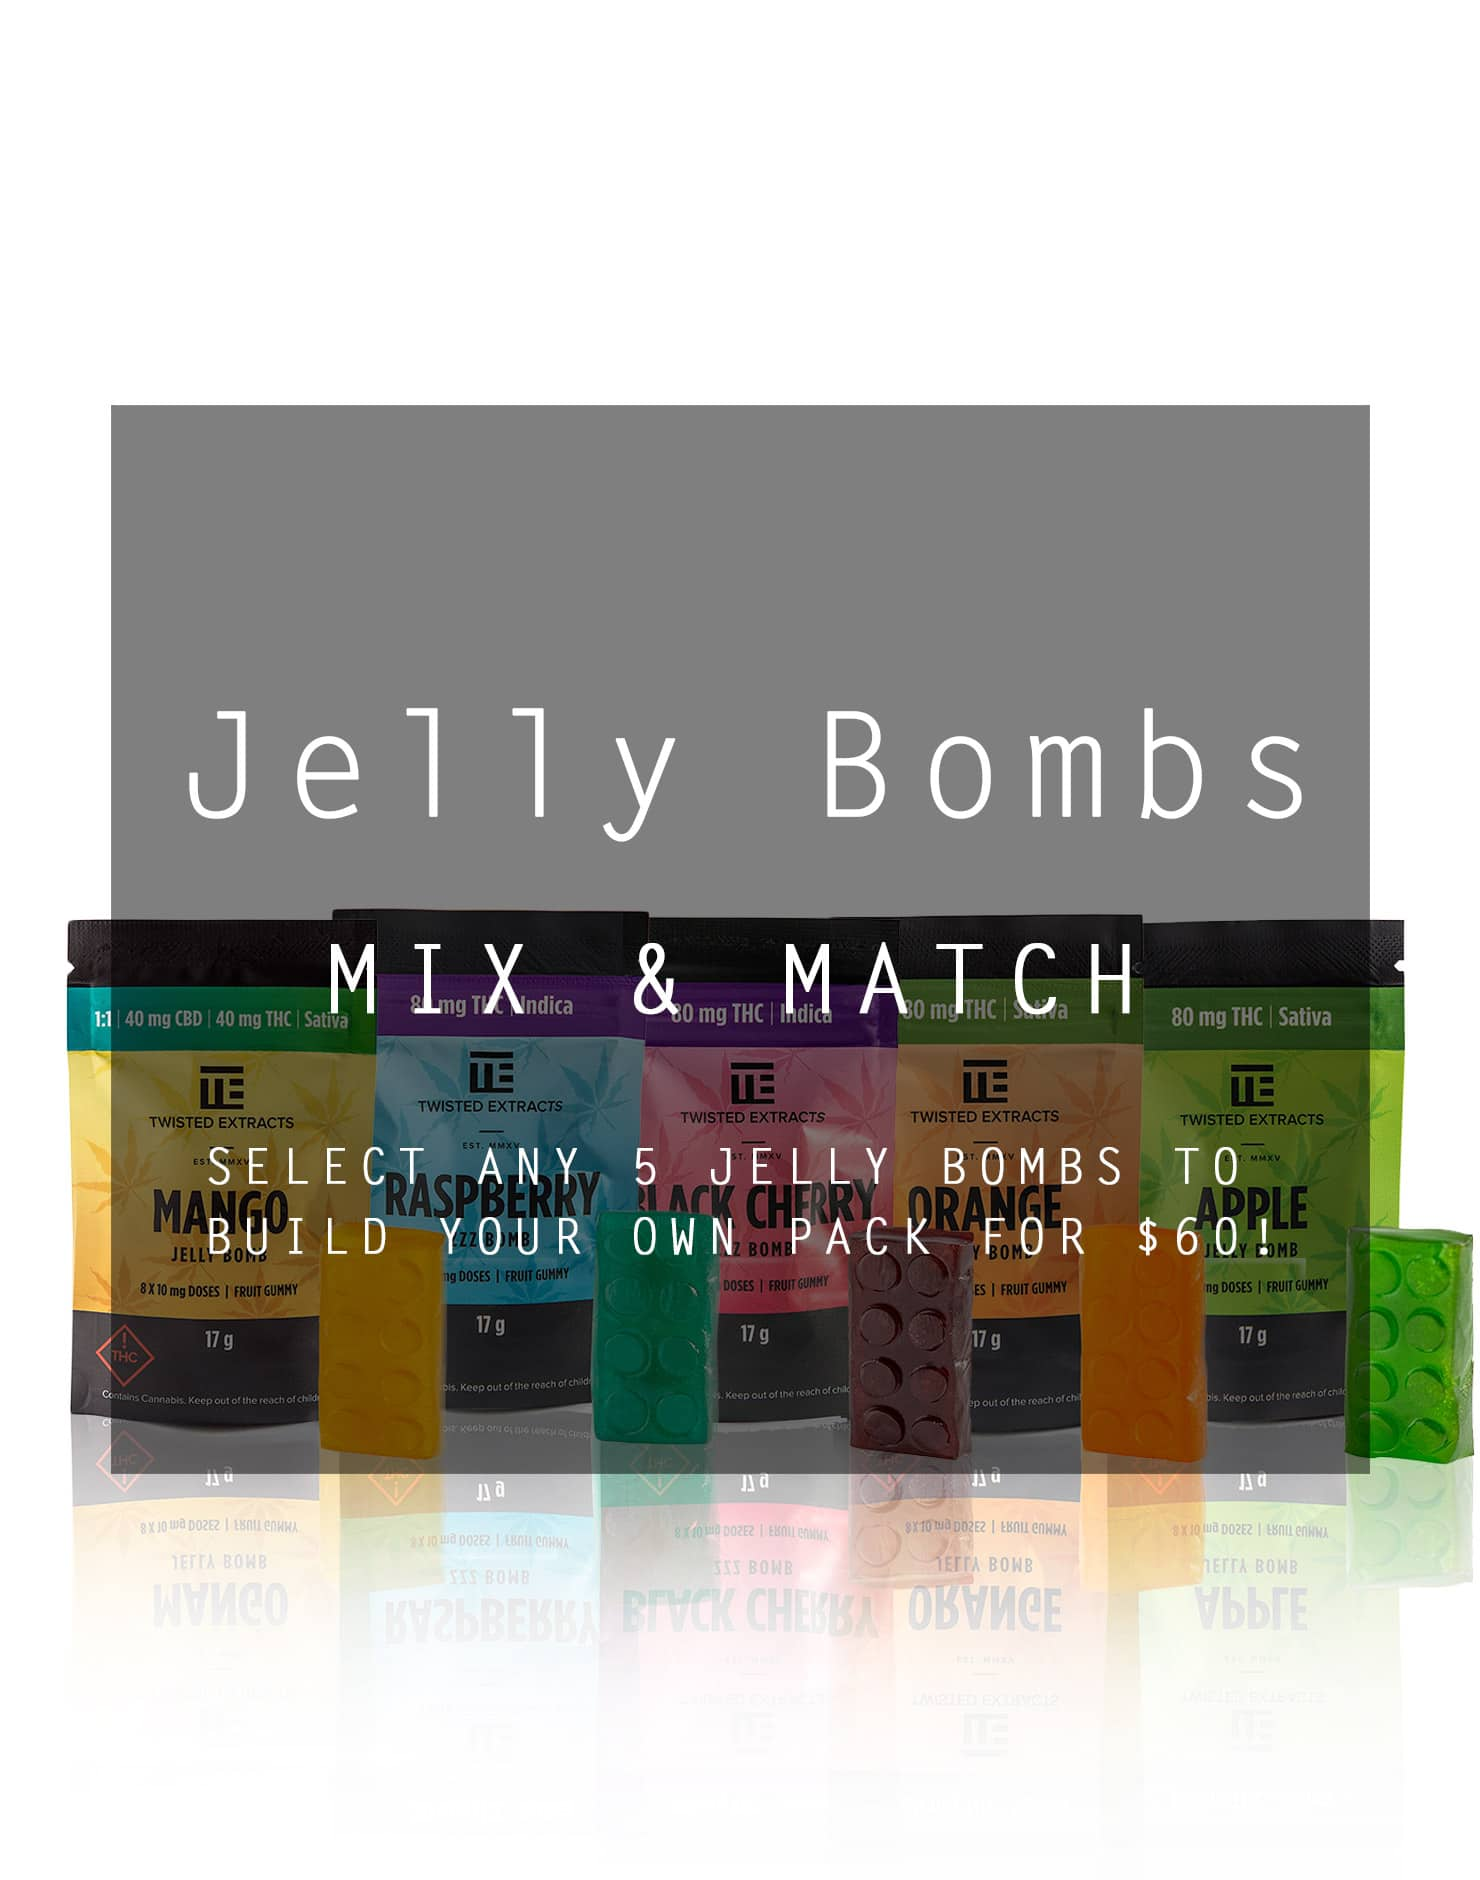 Jelly Bombs Mix & Match by Ganja Grams - Image © 2020 Ganja Grams. All Rights Reserved.